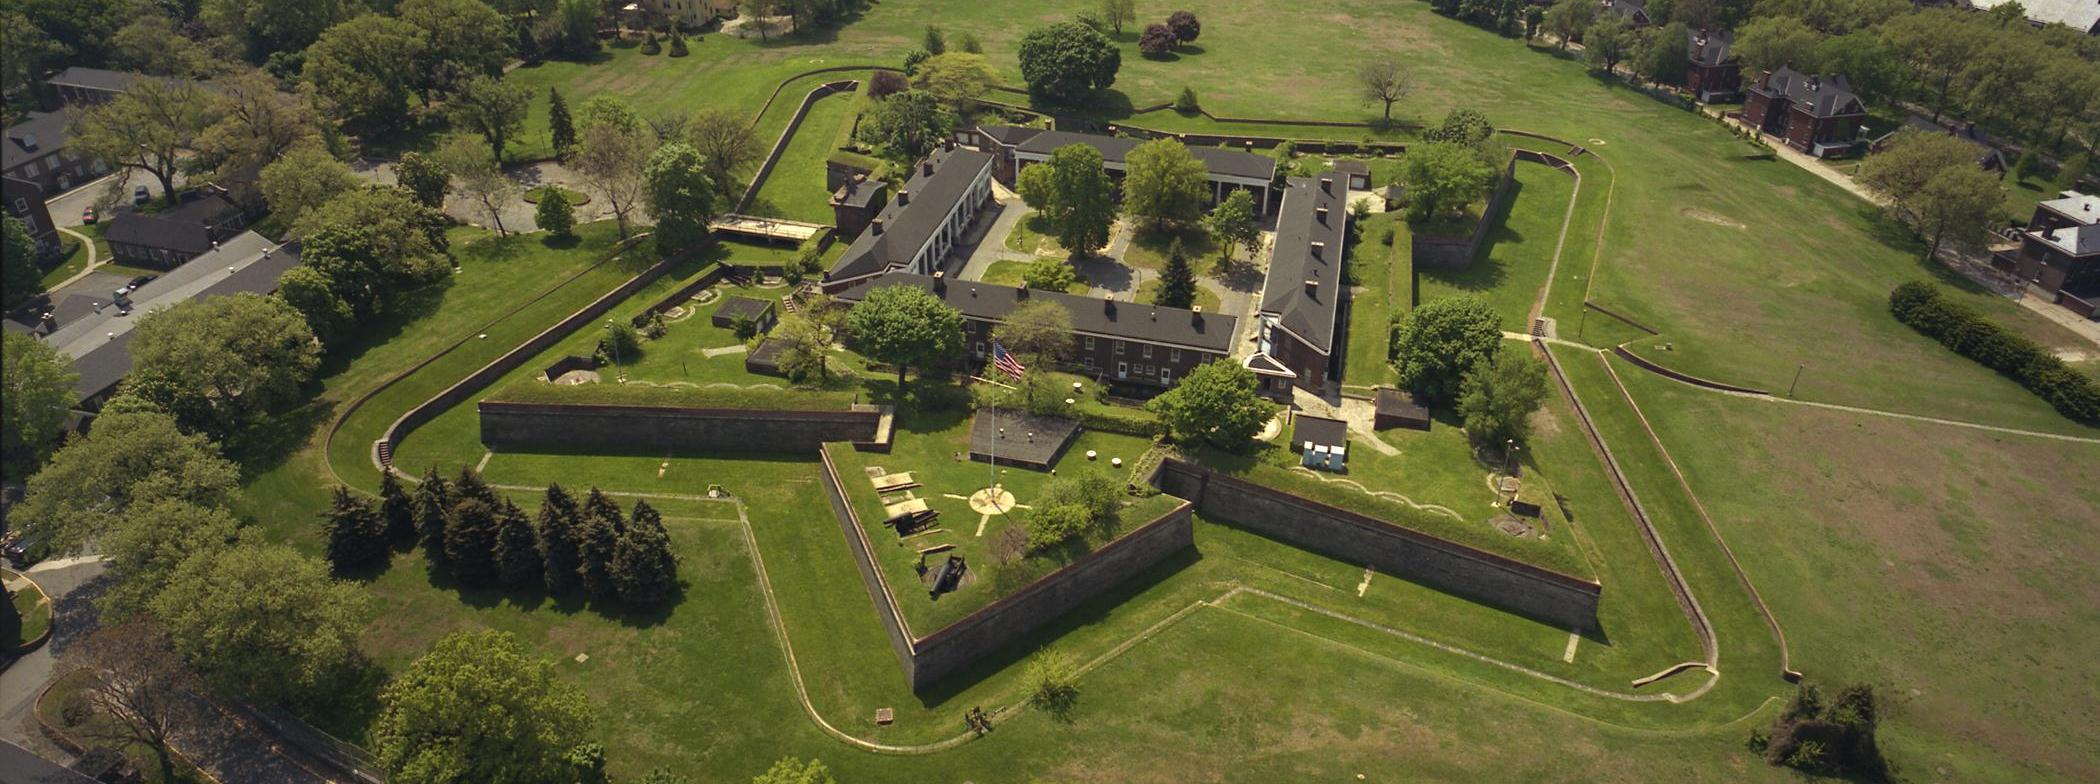 Aerial View of Fort Jay